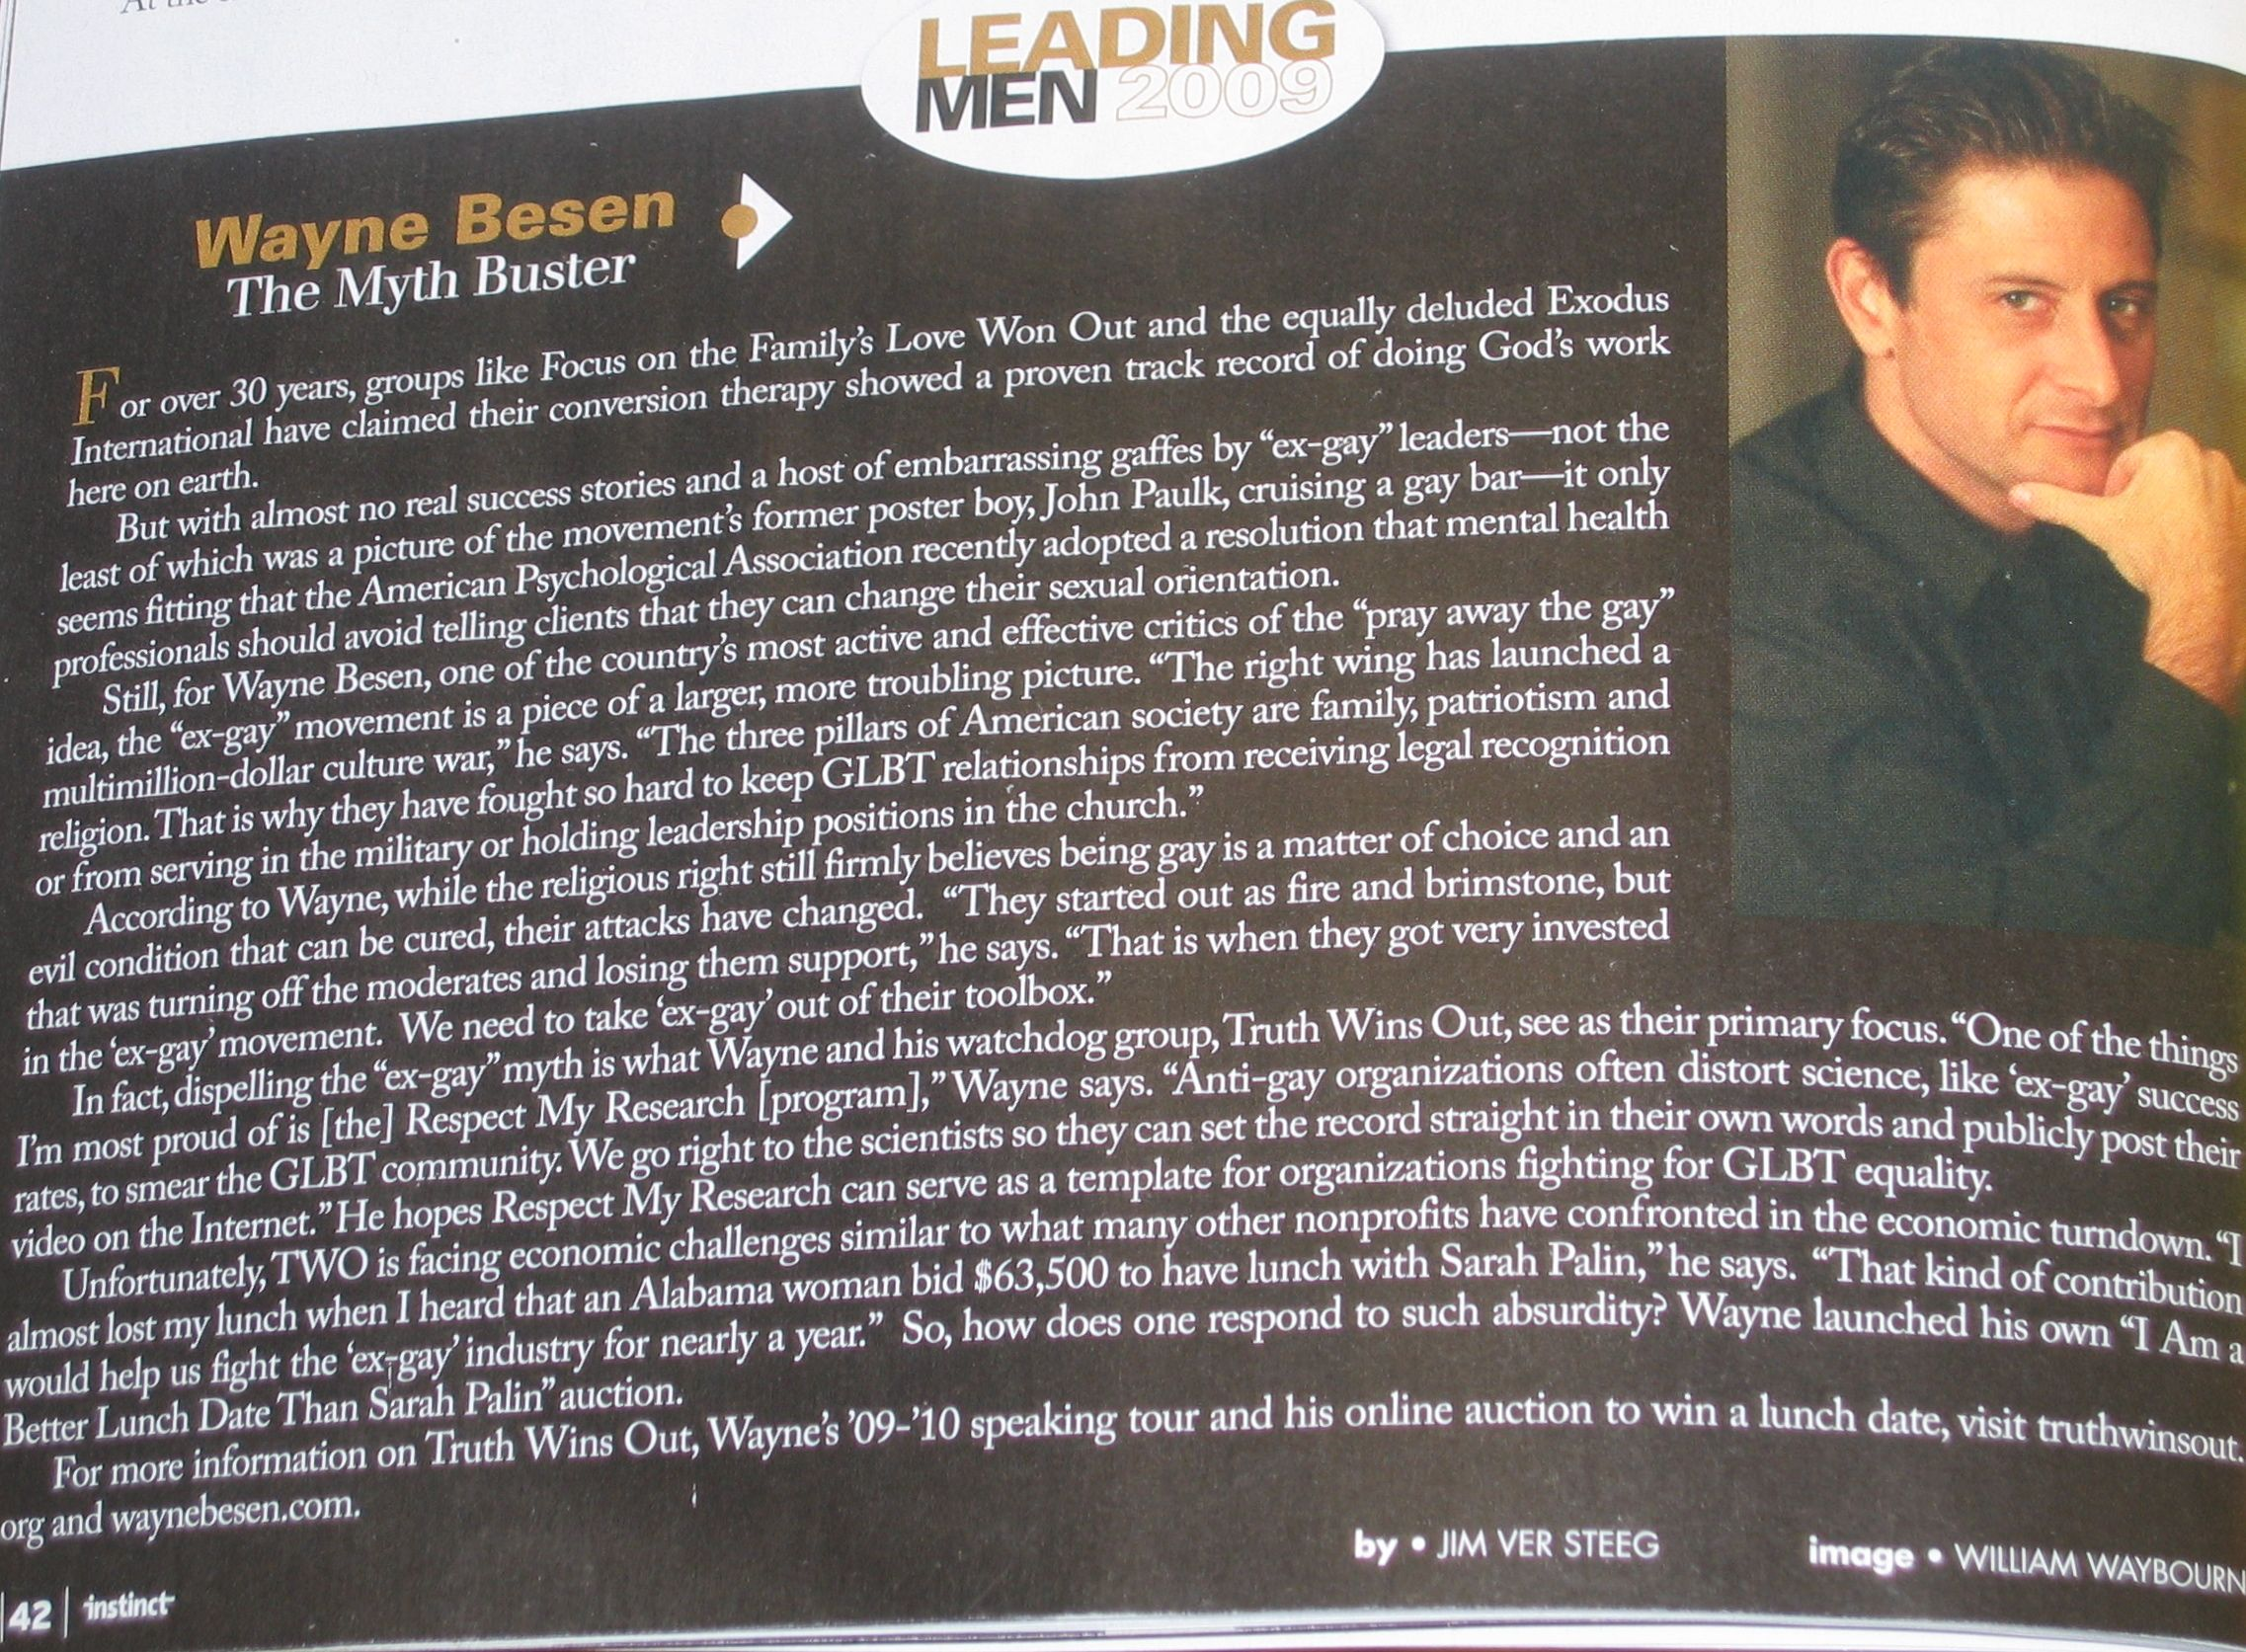 Wayne Instinct TWO Founder Wayne Besen Honored In Instinct Magazines Leading Man 2009 Issue